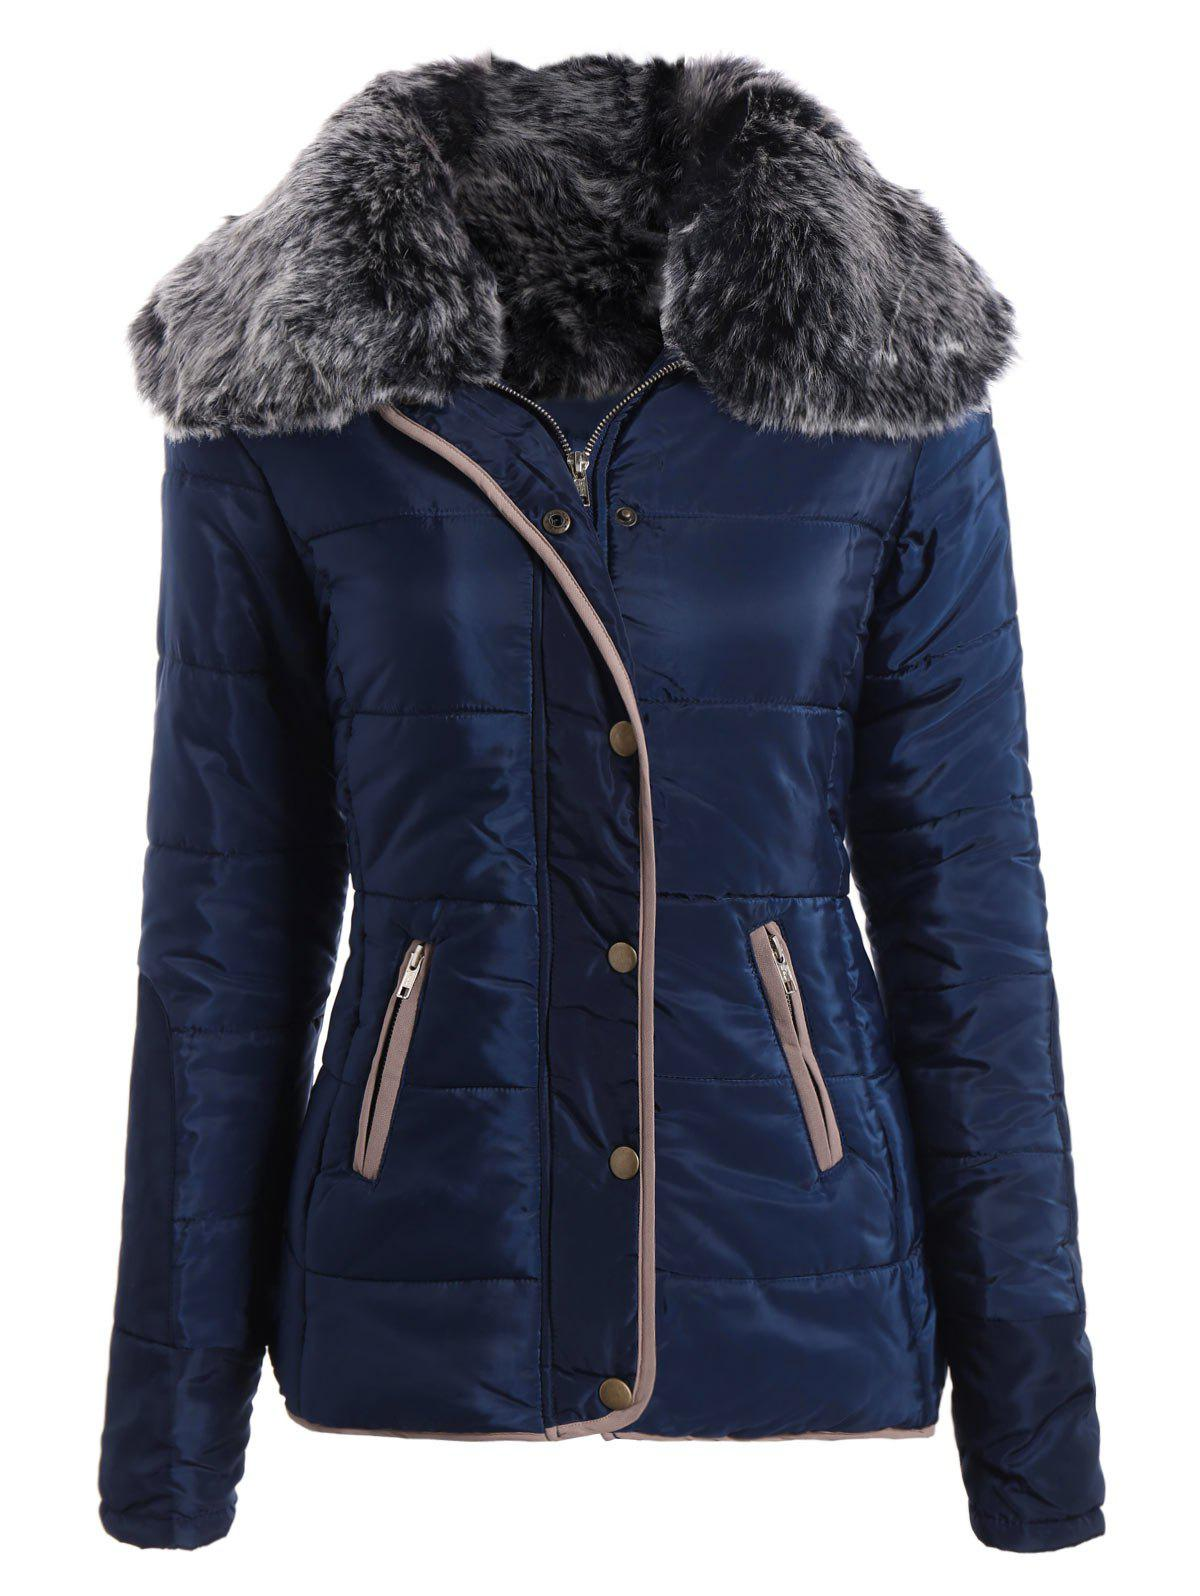 Long Sleeve Pocket Design Winter Padded Coat JacketWOMEN<br><br>Size: S; Color: CADETBLUE; Clothes Type: Padded; Material: Polyester,Faux Fur; Type: Slim; Shirt Length: Long; Sleeve Length: Full; Collar: Turn-down Collar; Pattern Type: Patchwork; Embellishment: Pockets; Style: Fashion; With Belt: No; Weight: 0.587kg; Package Contents: 1 x Padded Coat;